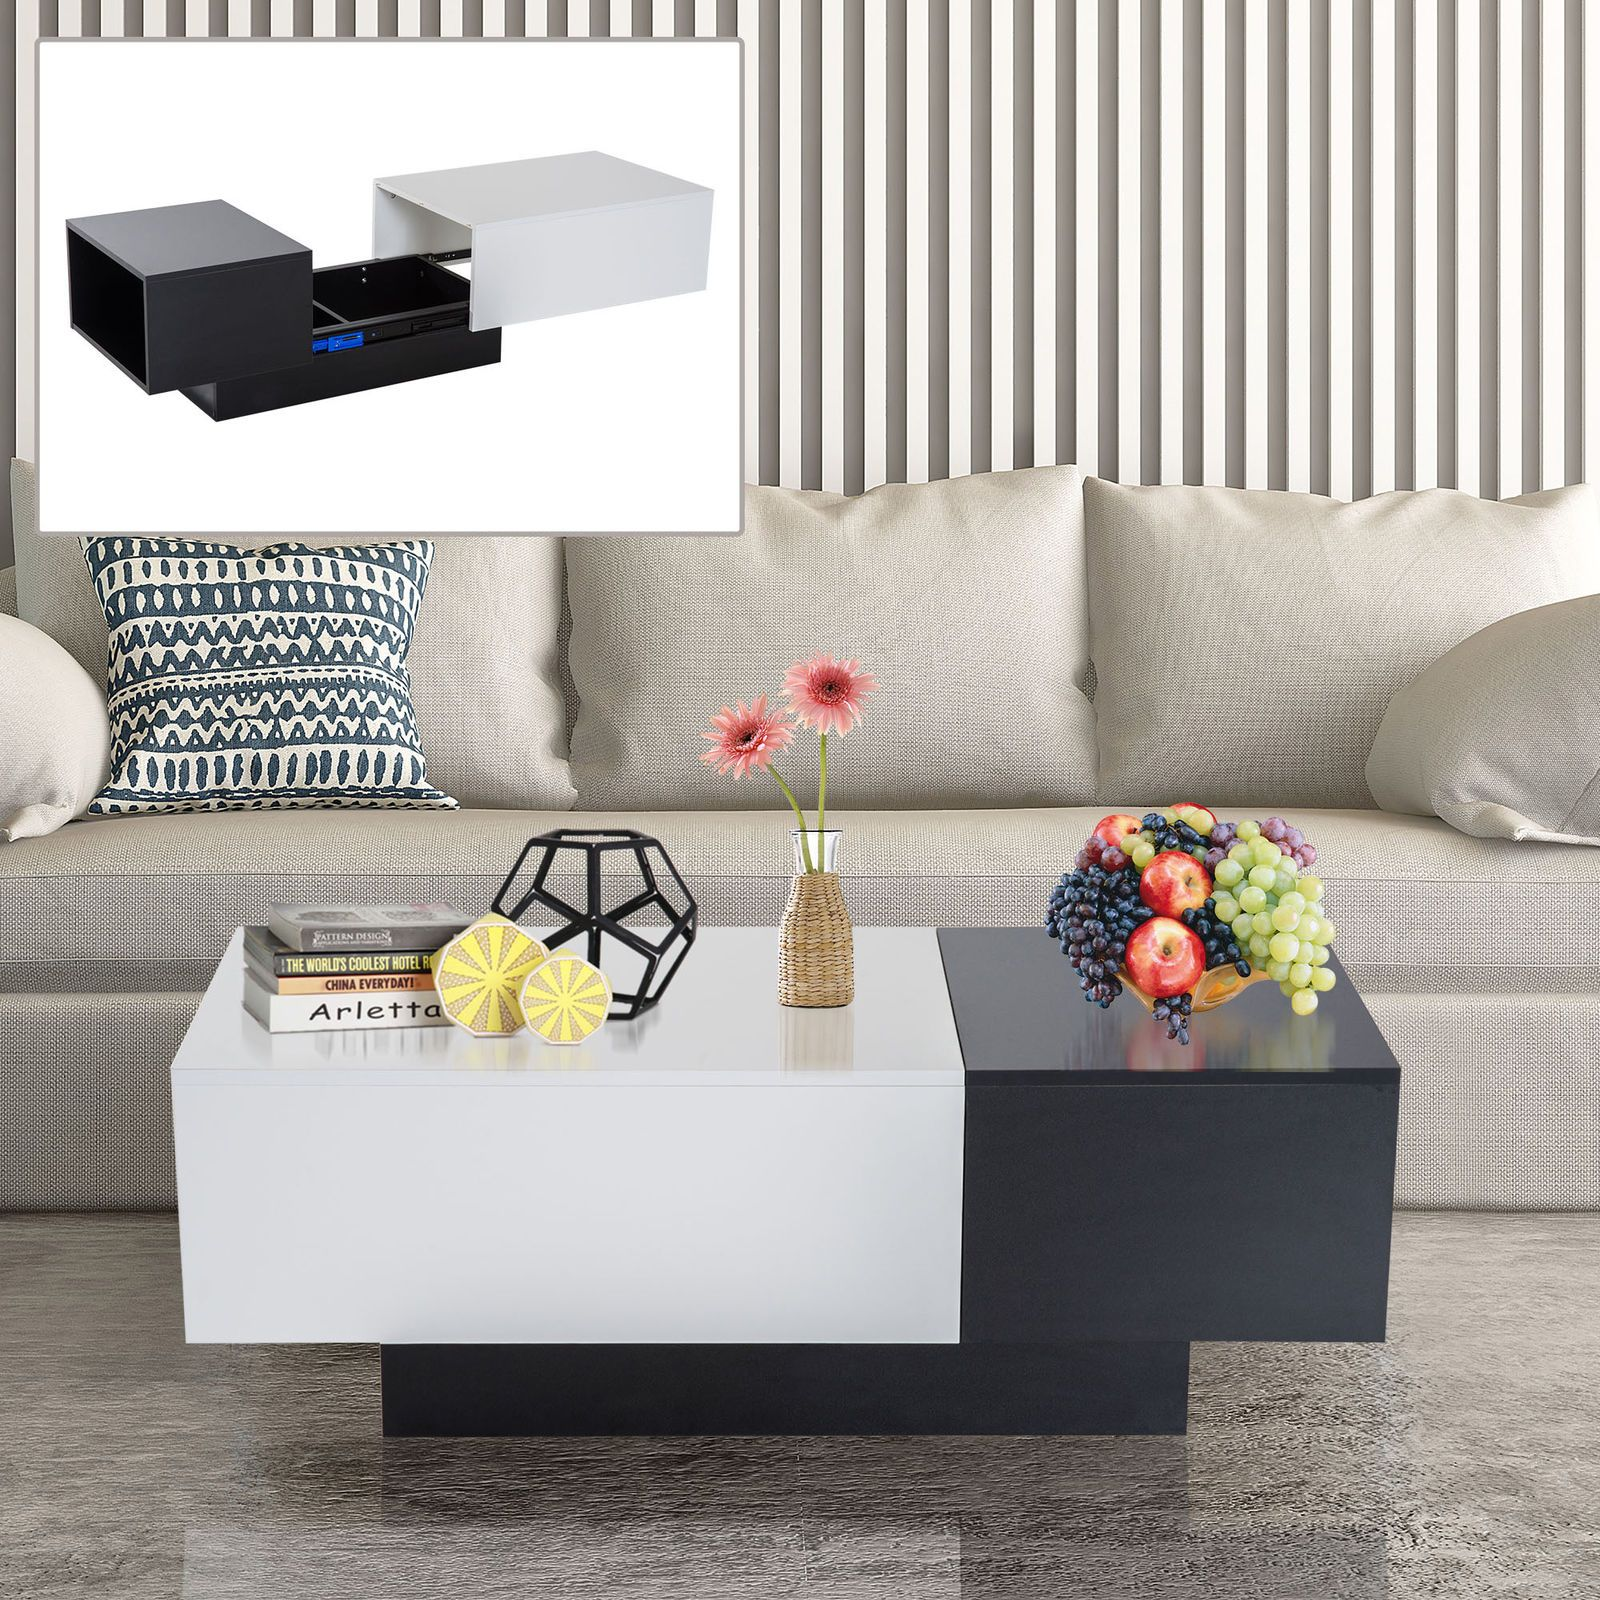 Modern Rectangle Coffee Table Slide Top Storage Furniture Home Office Coffee Table With Storage Coffee Table Rectangle Coffee Table [ 1600 x 1600 Pixel ]